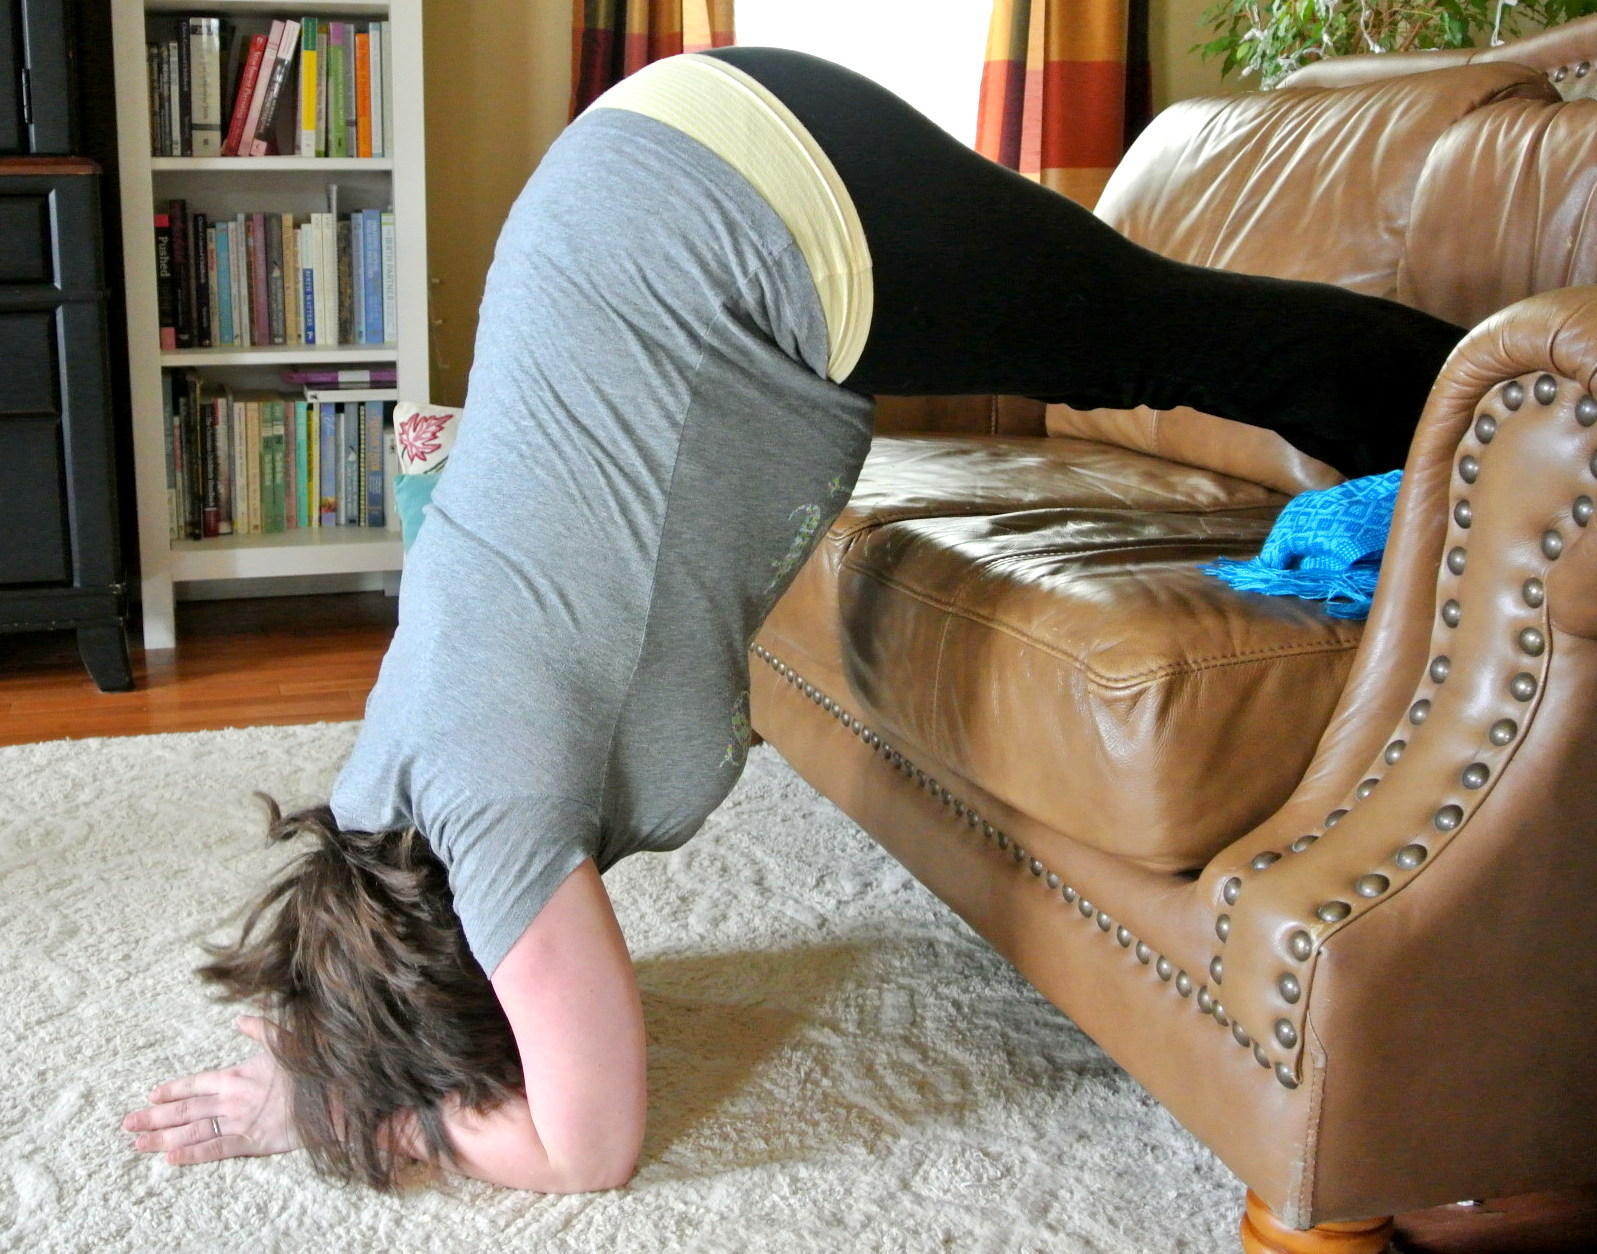 Natural Birth In Kitsap: Inversion - Going Upside-Down to ...